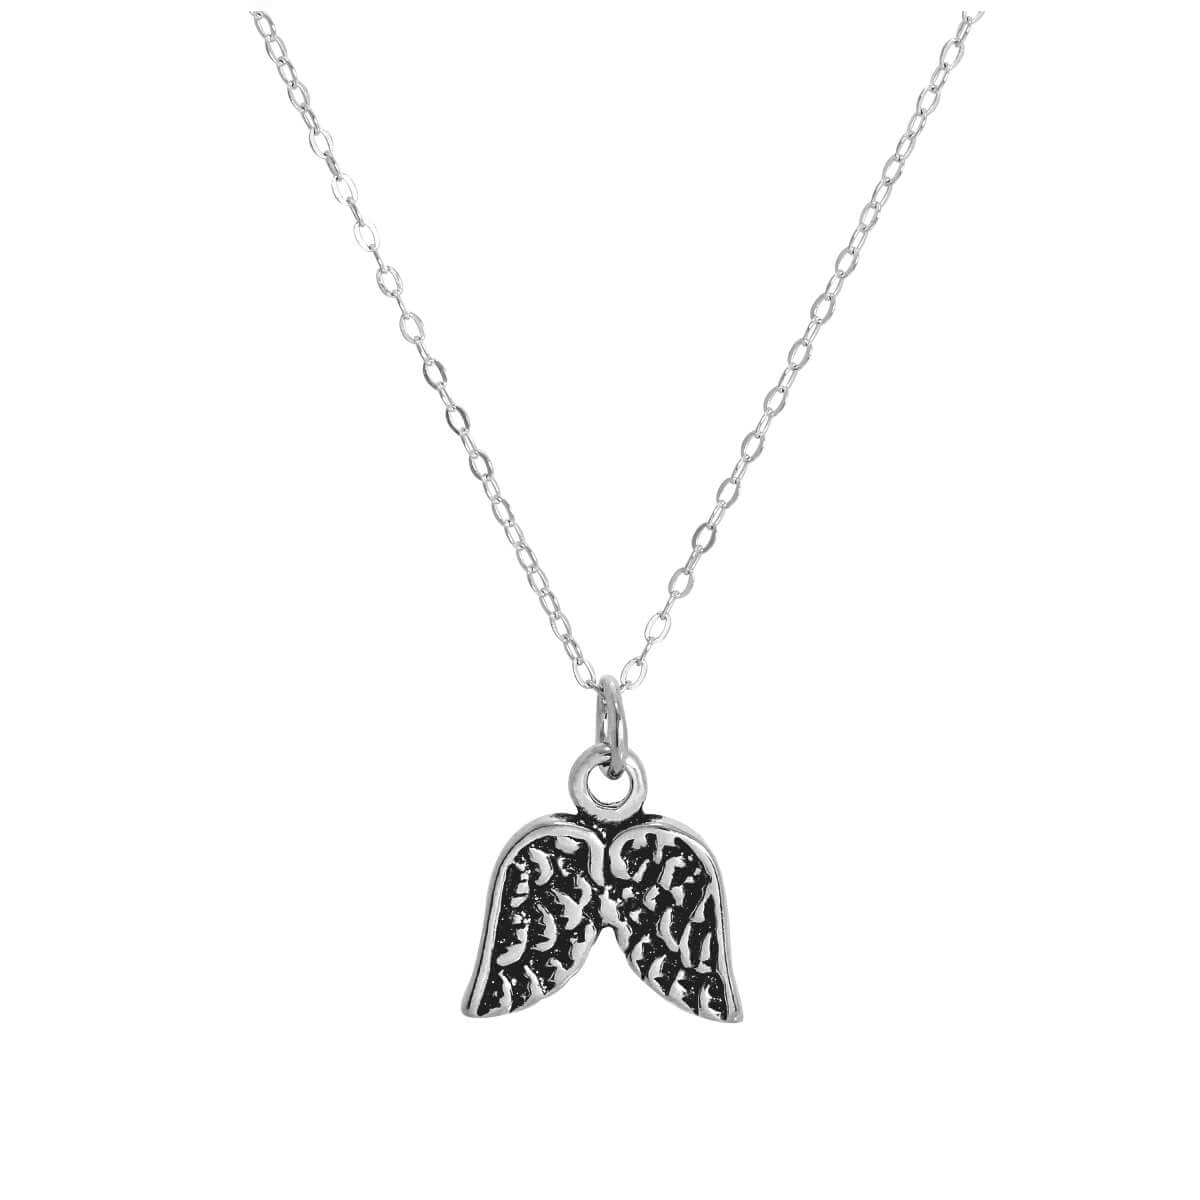 Sterling Silver Angel Wings Pendant Necklace 14 - 28 Inches